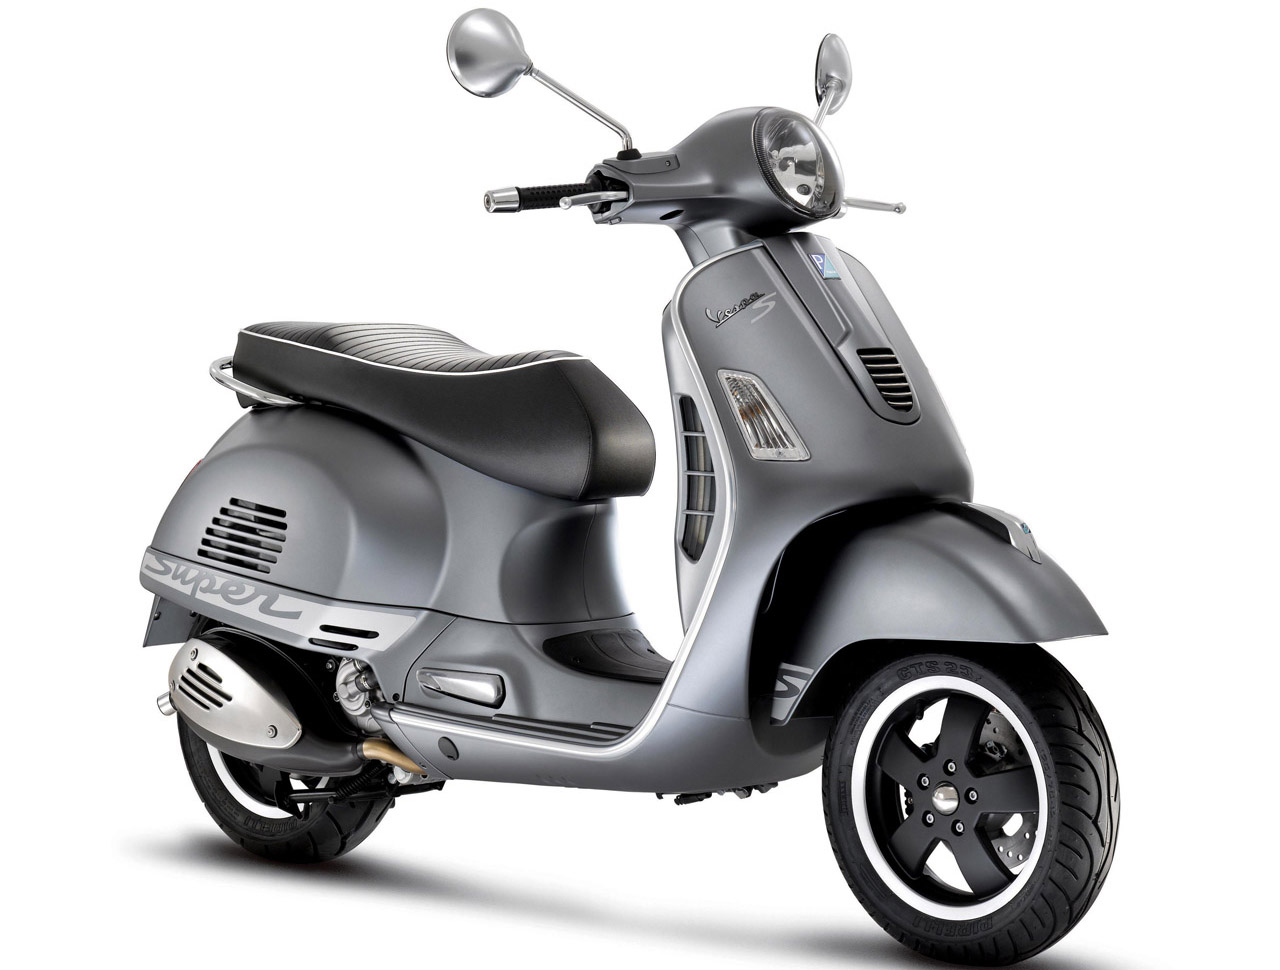 2011 vespa gts 300 moto zombdrive com. Black Bedroom Furniture Sets. Home Design Ideas